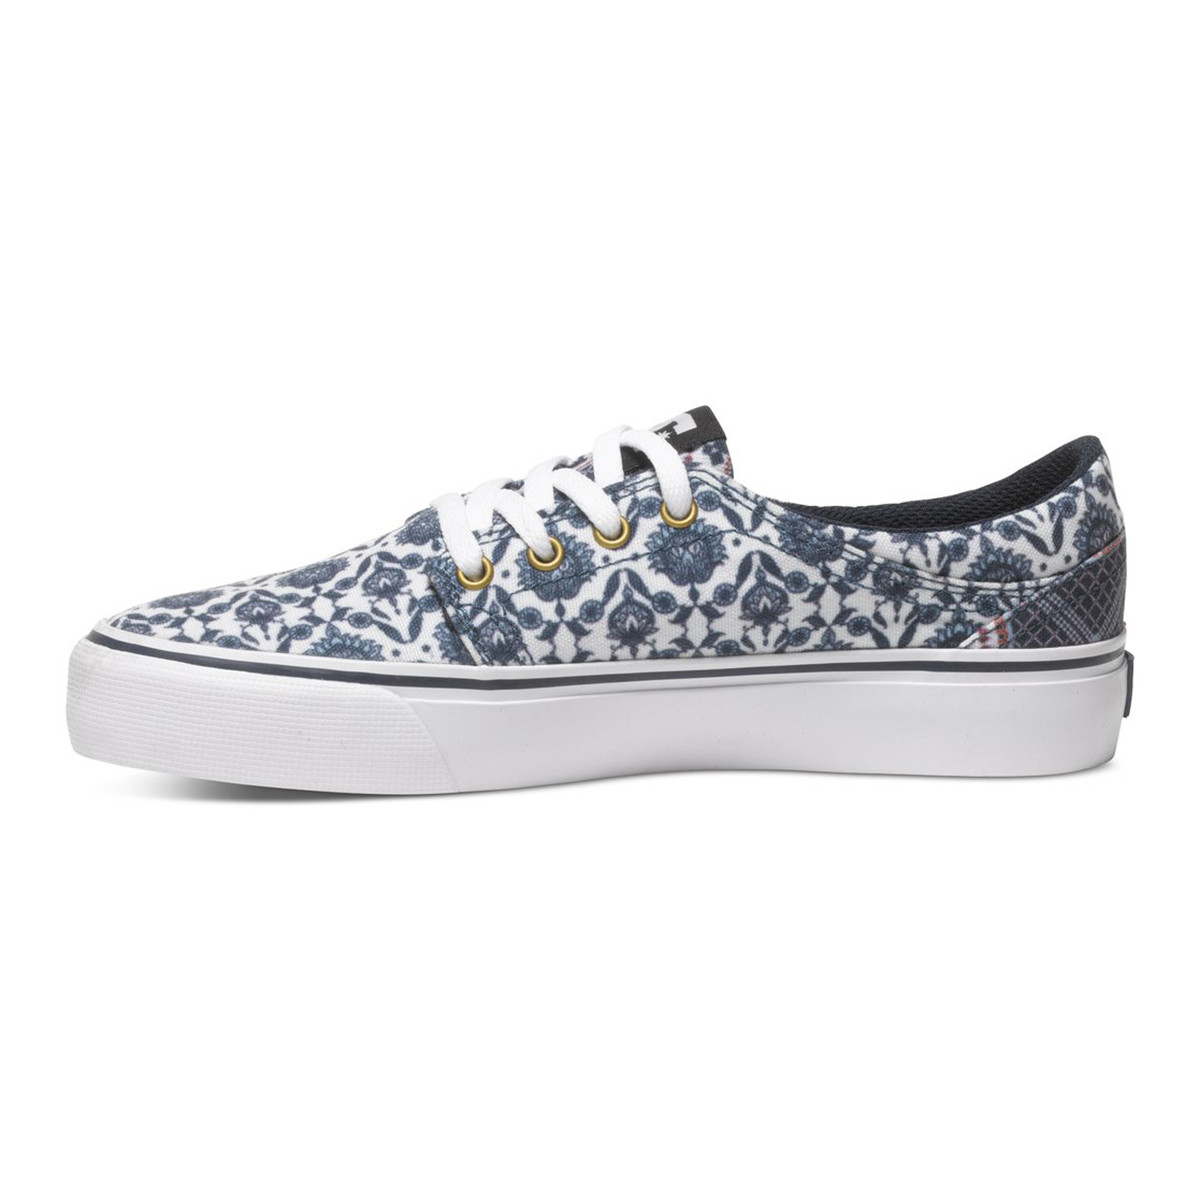 Trase Sp Chaussure Femme